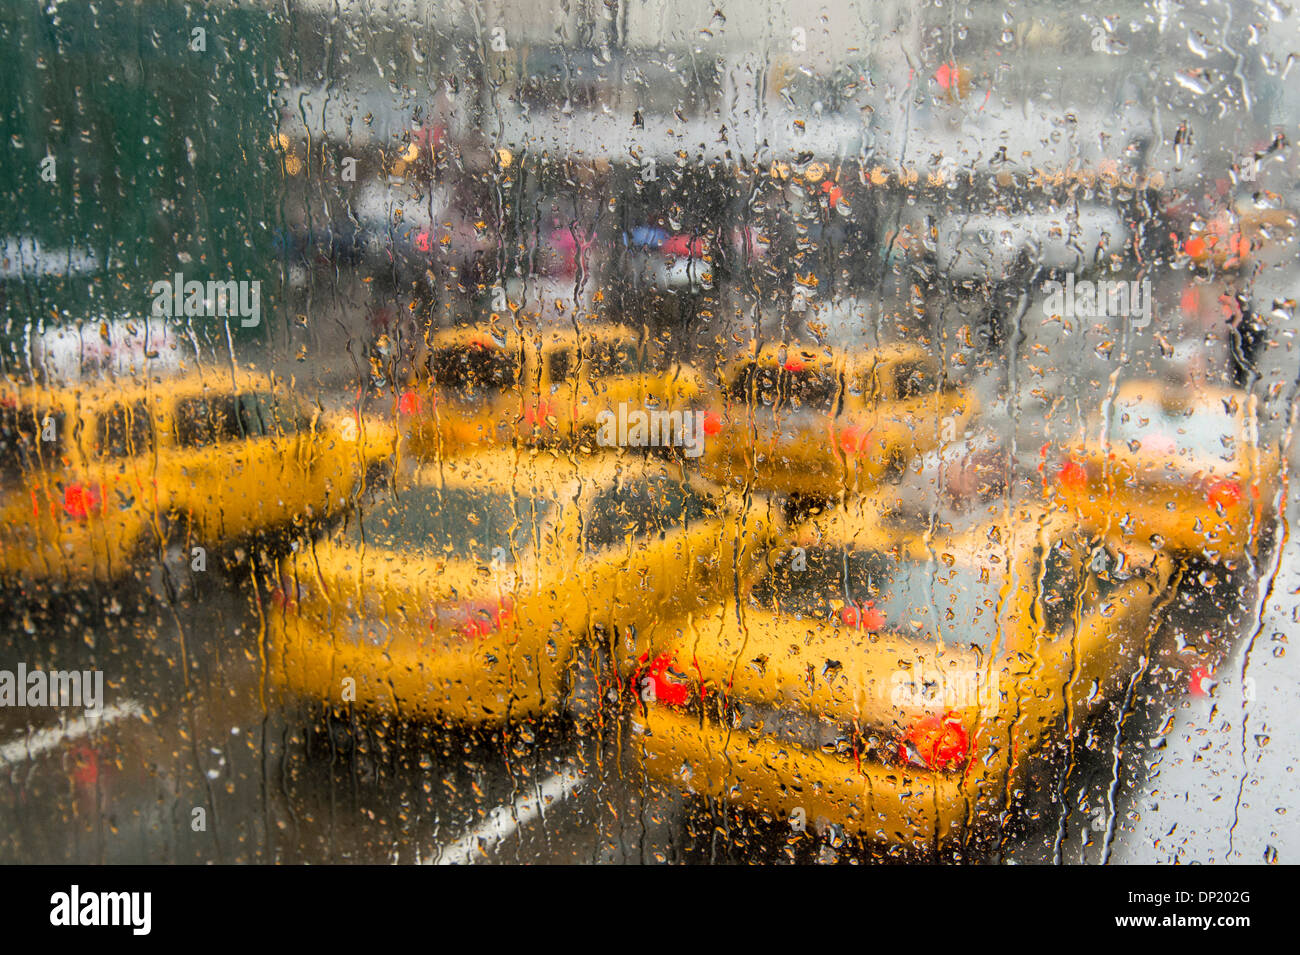 Des taxis dans la pluie, Manhattan, New York City, New York, USA Photo Stock